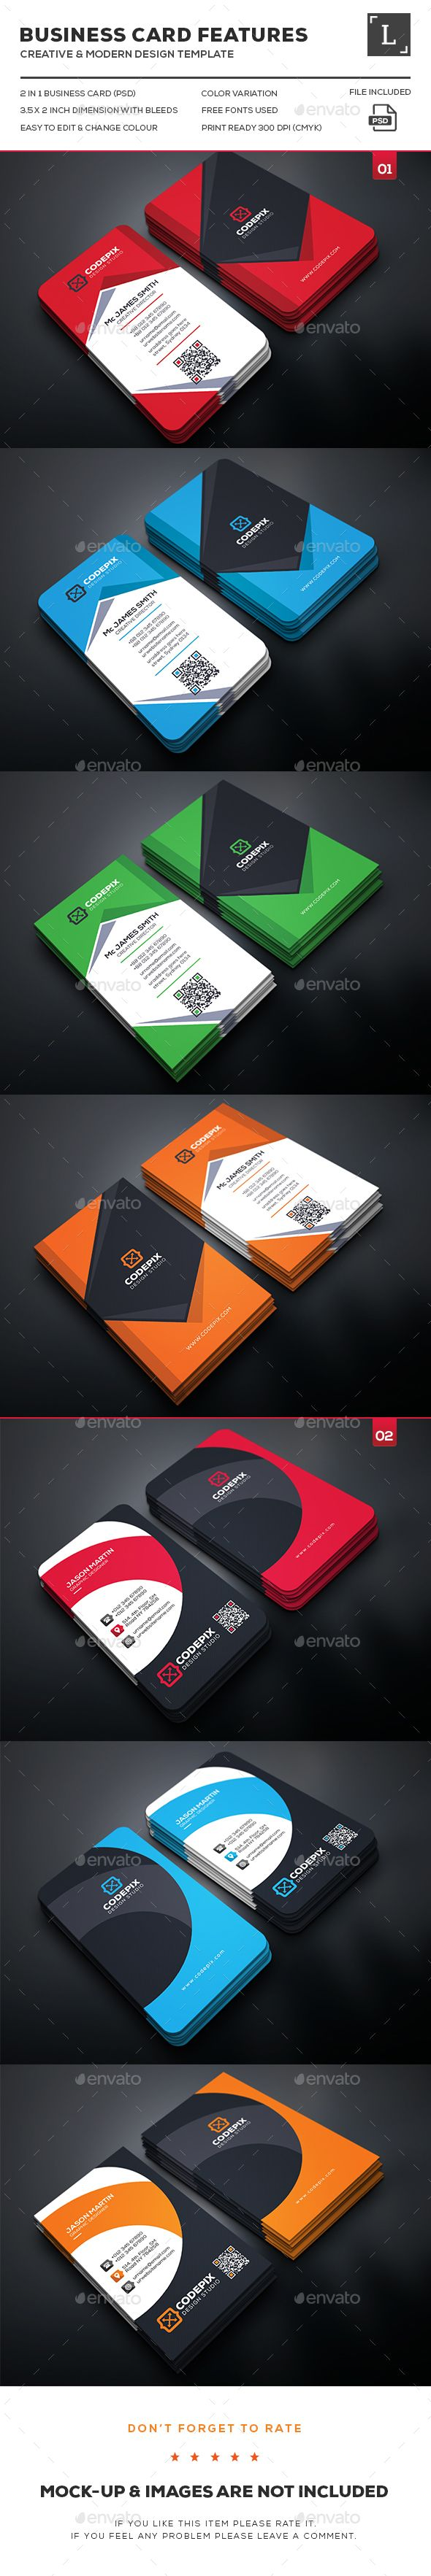 80 best BUSINESS CARD images on Pinterest | Business cards, Graphics ...